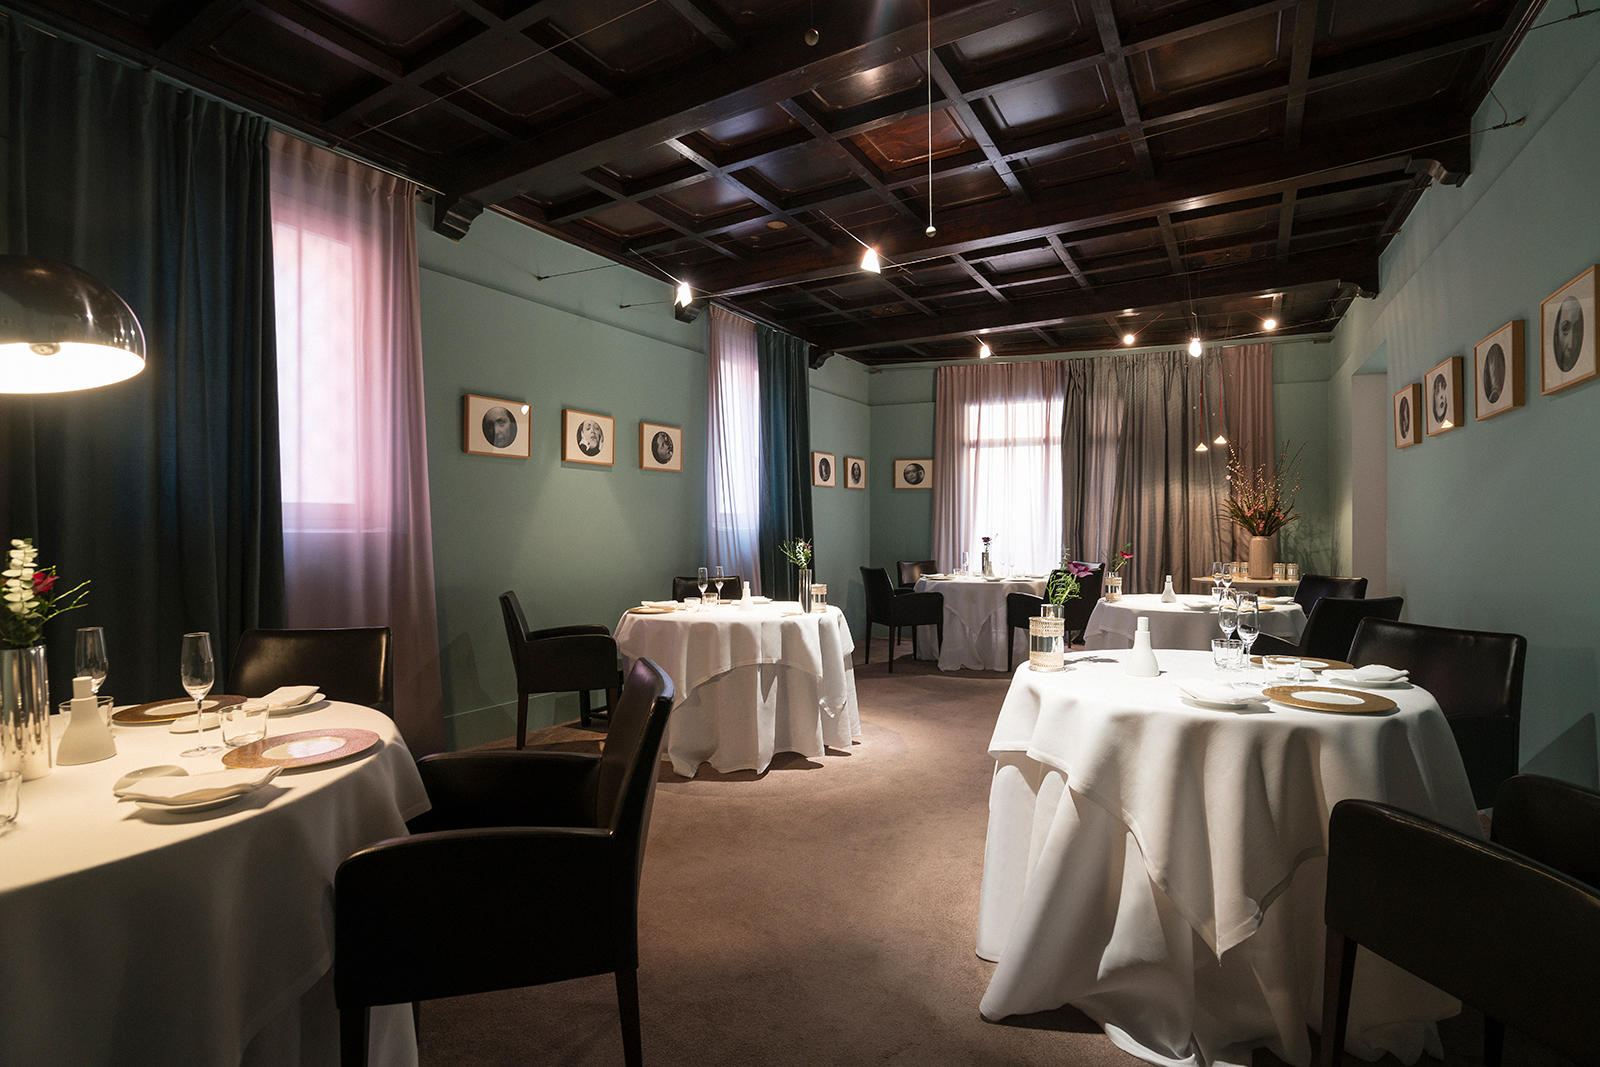 Restaurants with art collections: Osteria Francescana